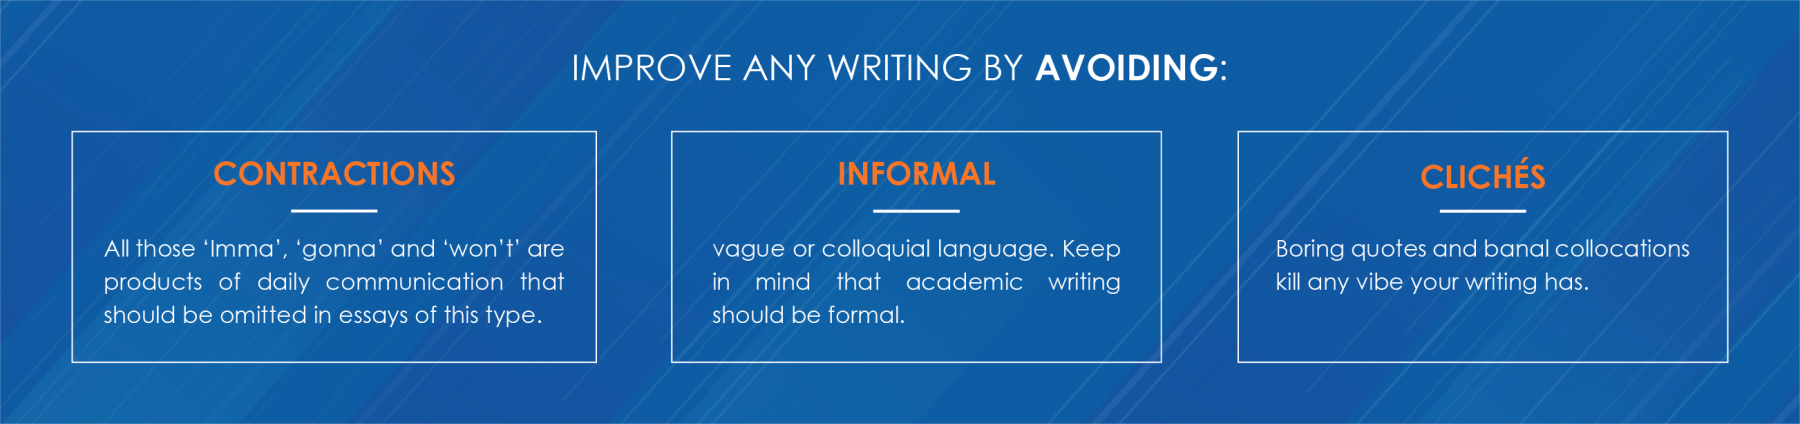 You can easily improve any writing by avoiding